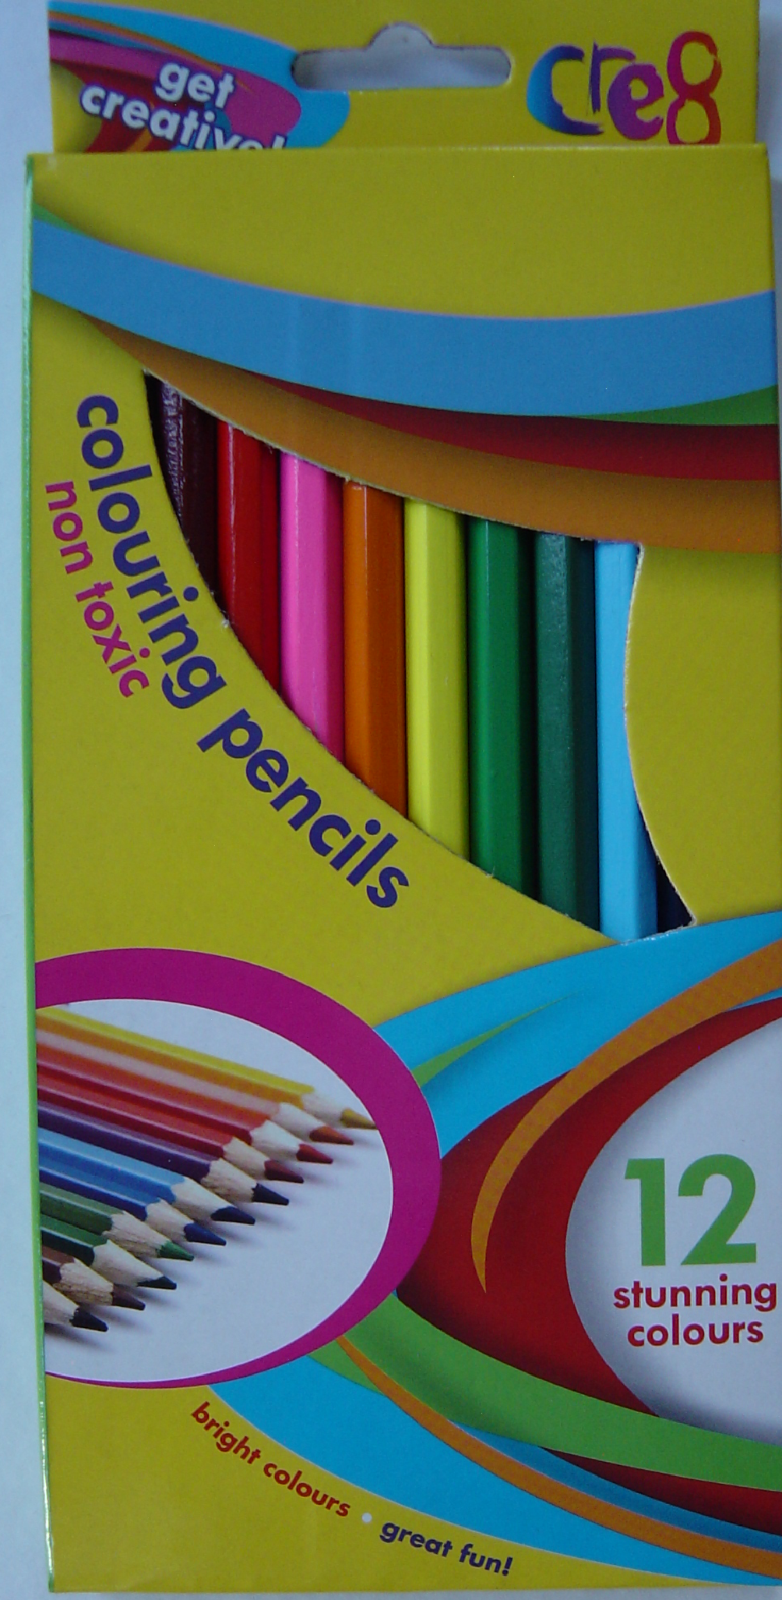 Adult Colouring Book Mind Relaxing stress relief therapy good quality, 14 books 8